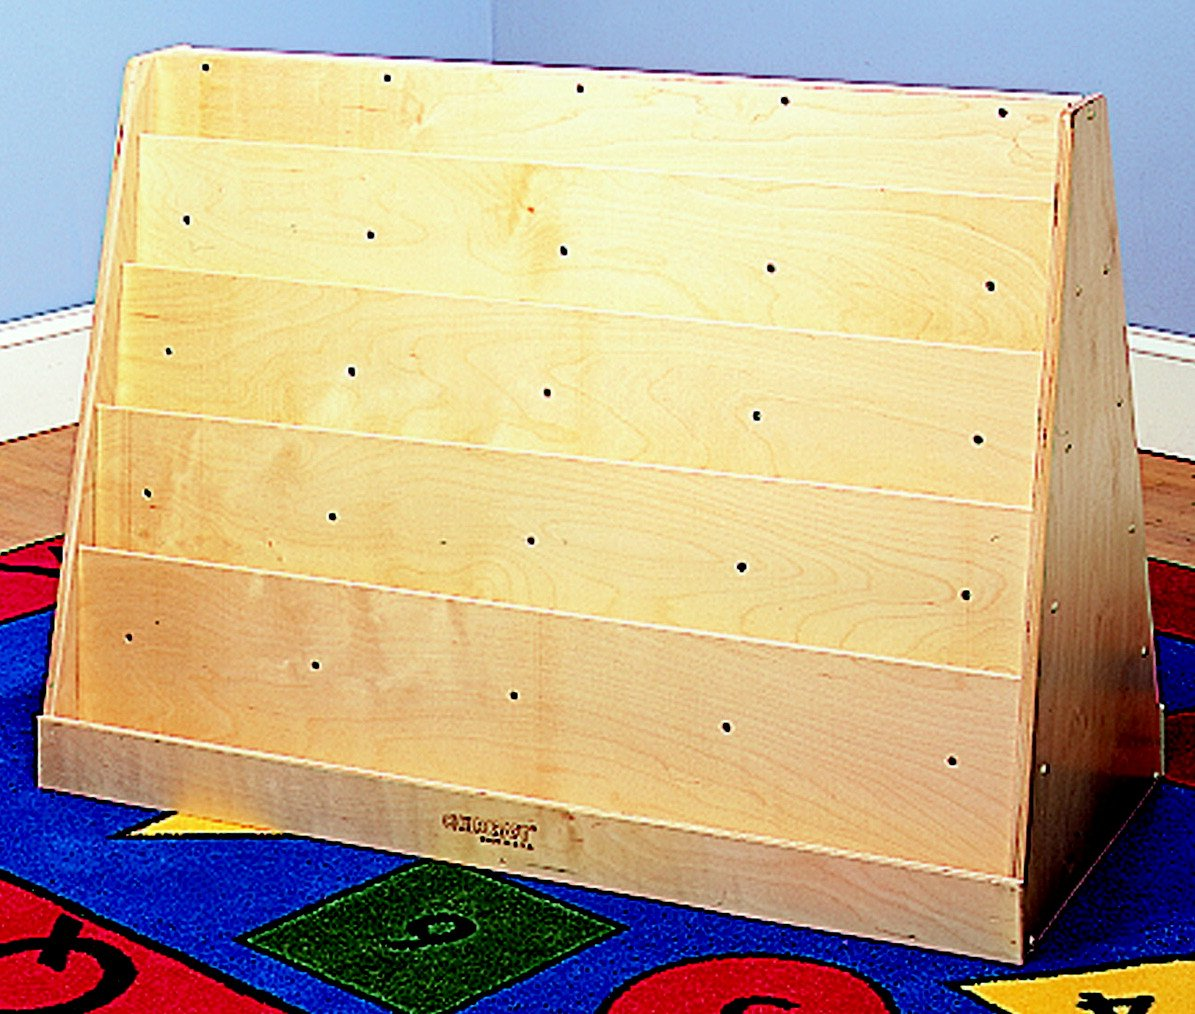 Childcraft 071958 Double Sided Wide and Extra Deep Book Display, Birch Veneer Panel, UV Acrylic, 42'' x 19'' x 29'', Natural Wood Tone